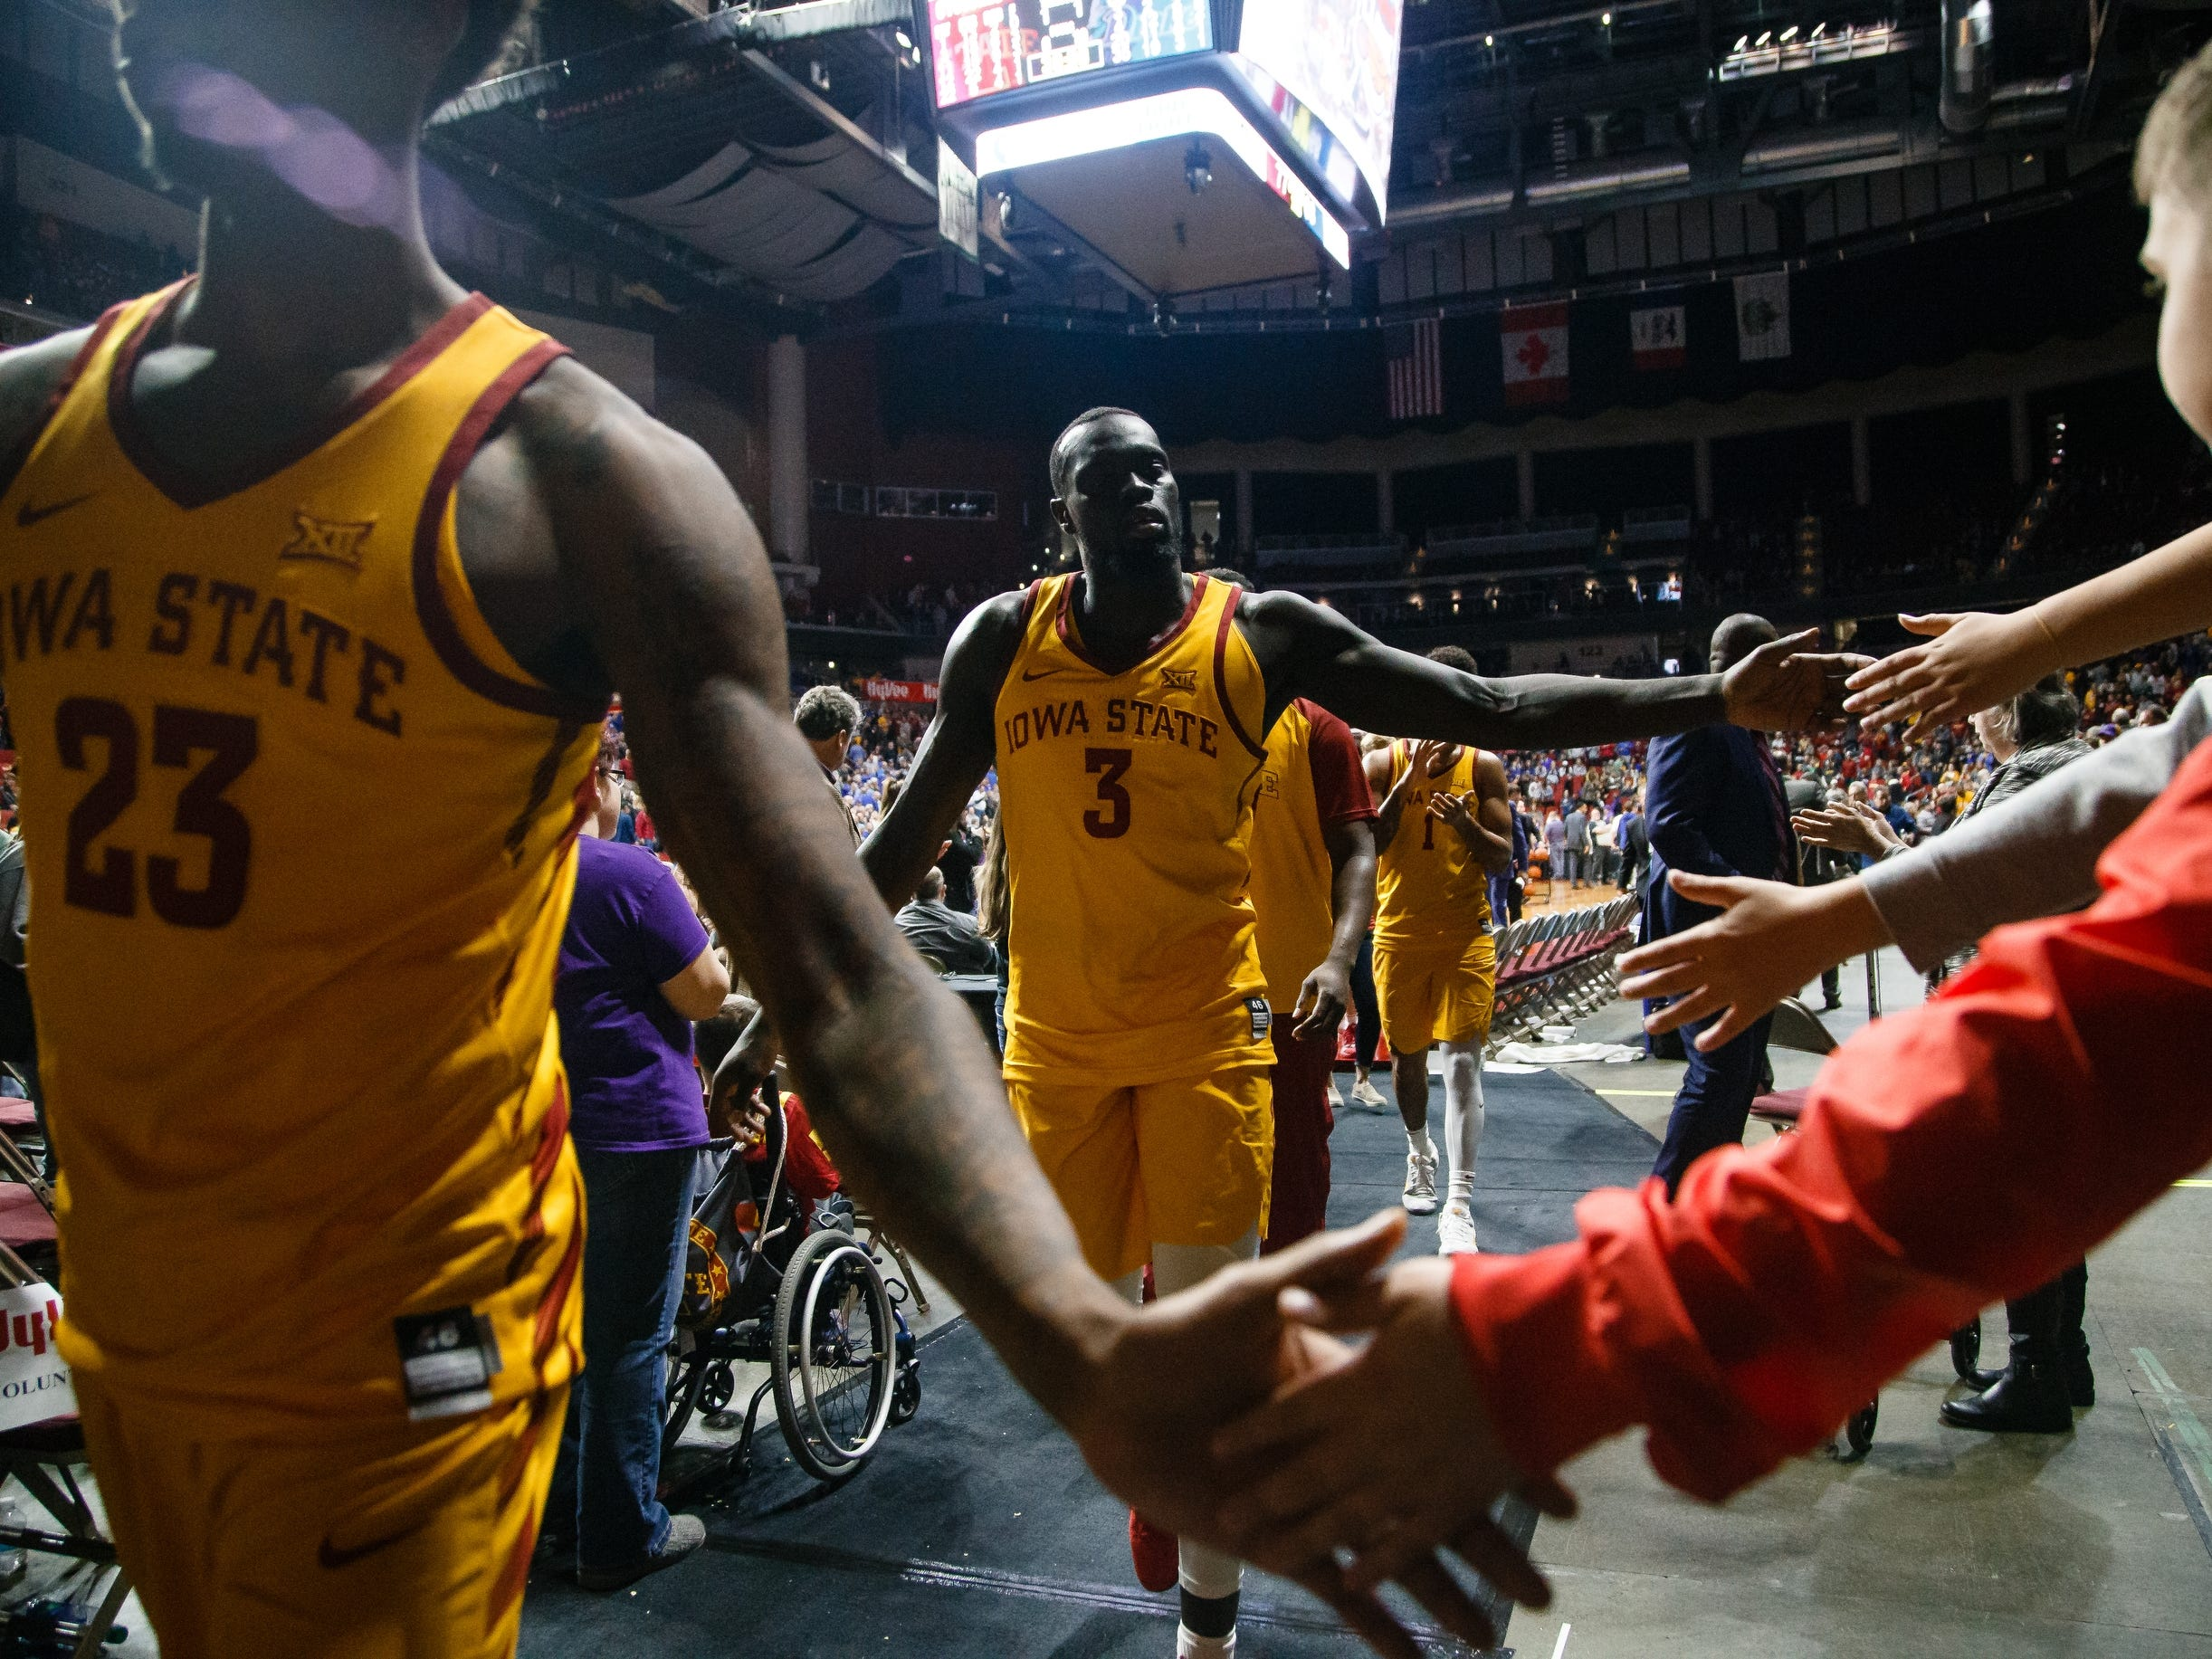 Iowa State's Marial Shayok (3) high-fives fans after the Cyclones defeated Drake 77-68 during their basketball game at the Hy-Vee Classic on Saturday, Dec. 15, 2018, in Des Moines.